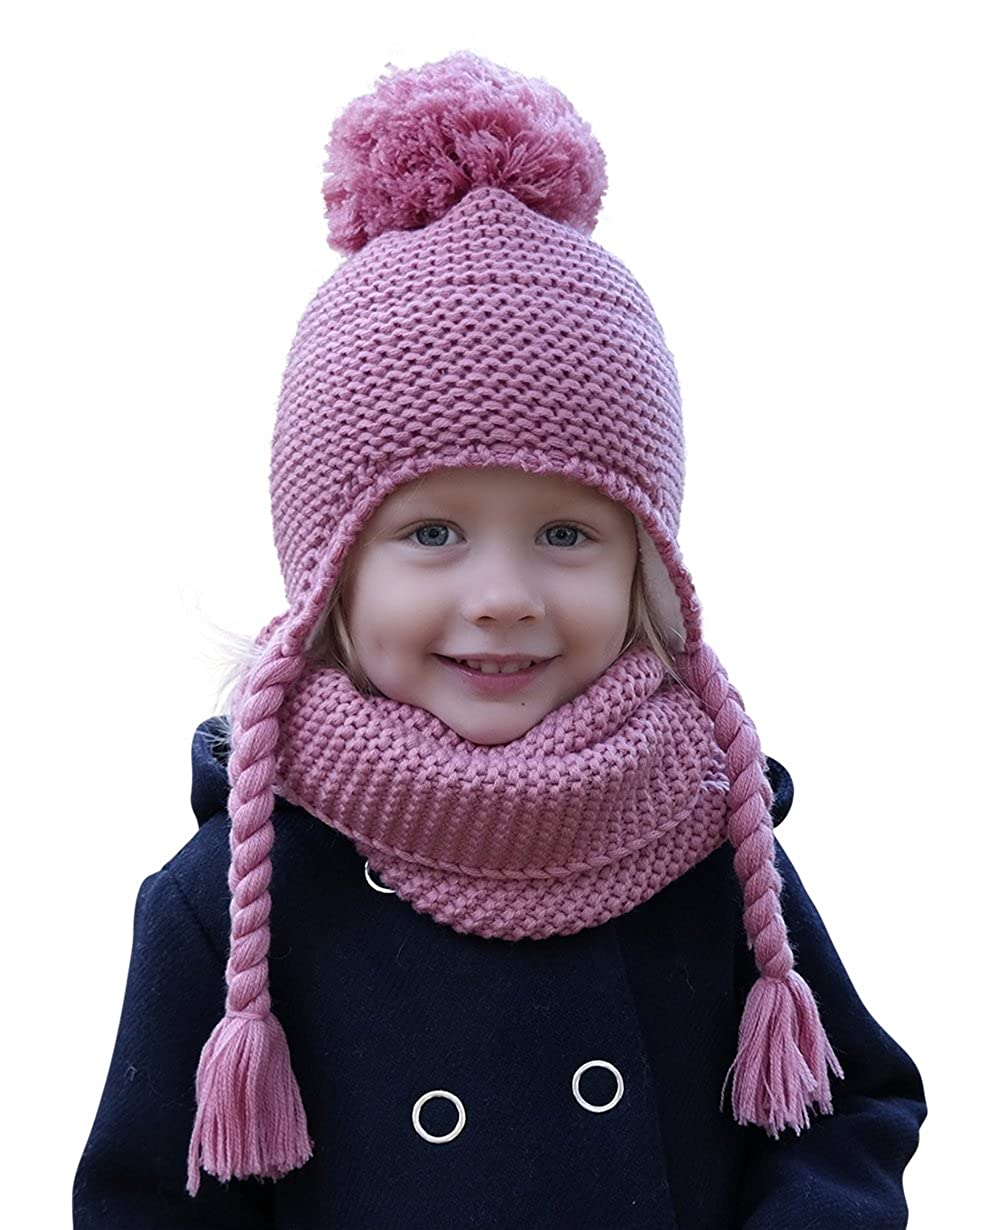 HILLTOP winter set for children of winter scarf and matching knitted hat/beanie with pompom/different colors. color: 1A-pink